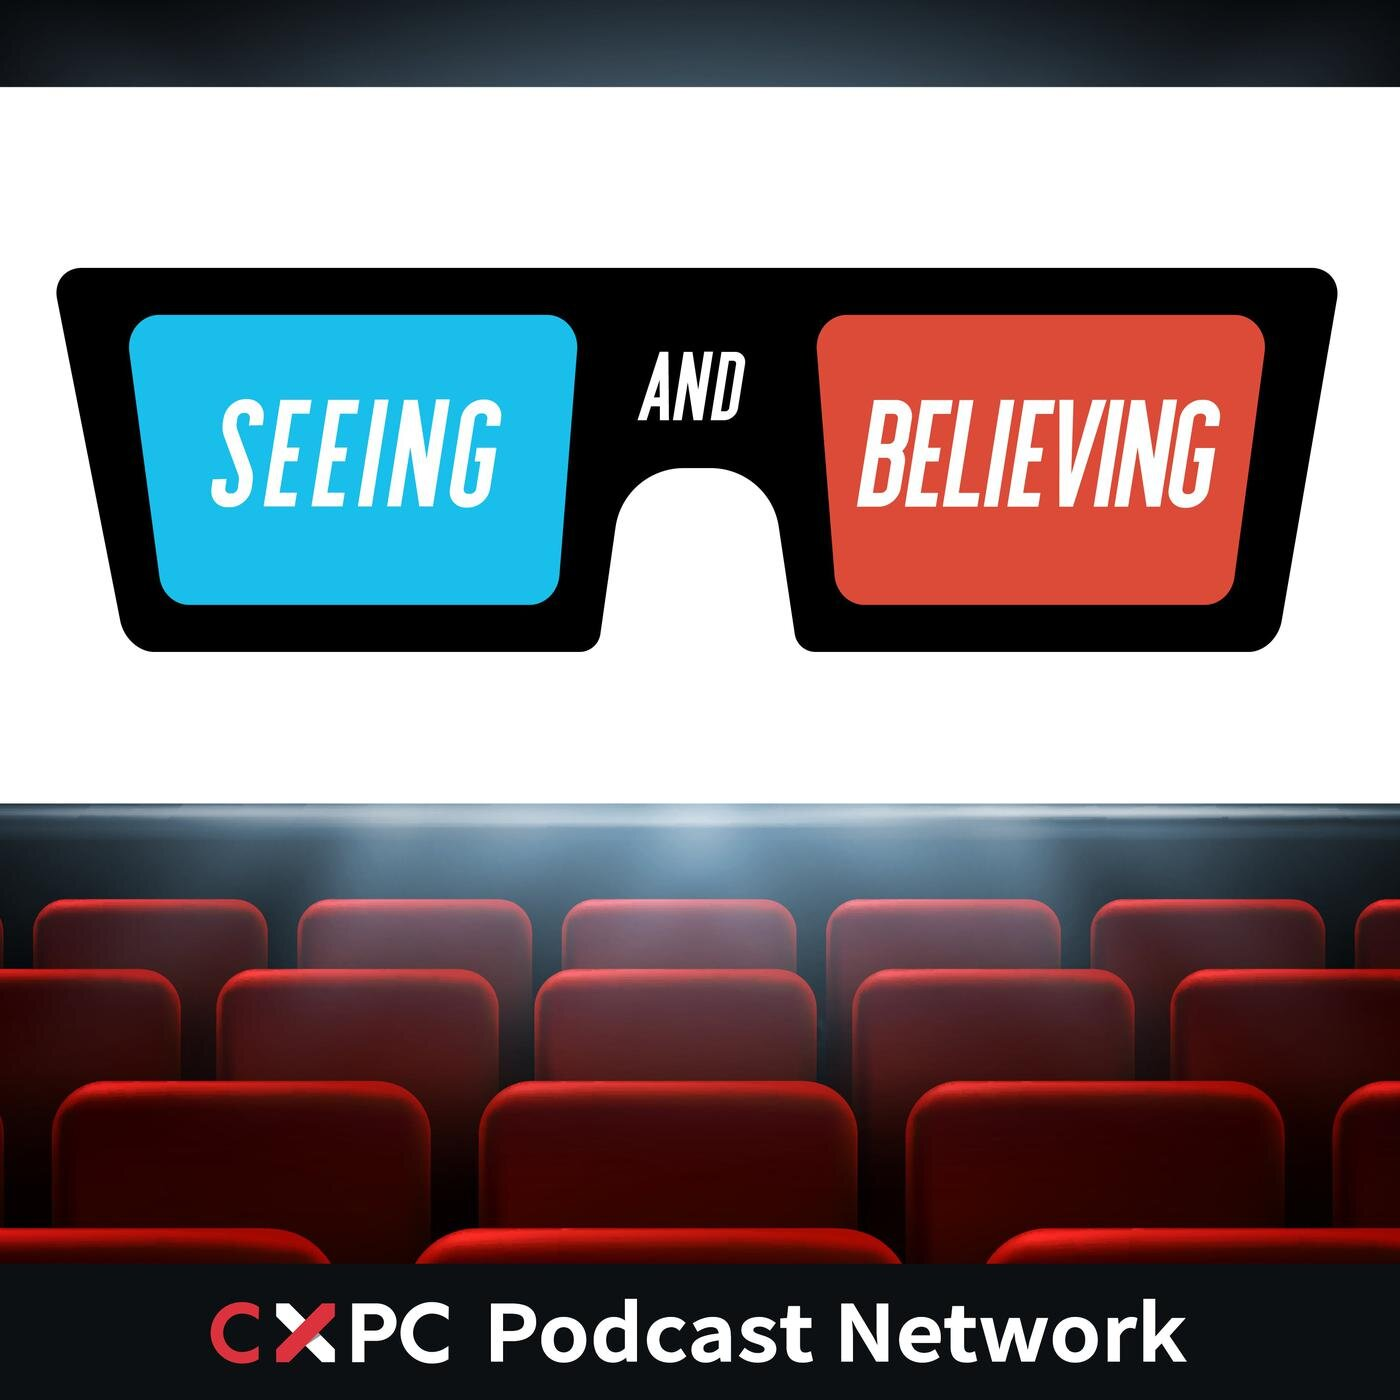 """MEDIA APPEARANCE: Guest on the """"Seeing and Believing"""" Podcast with Kevin McLenithan"""